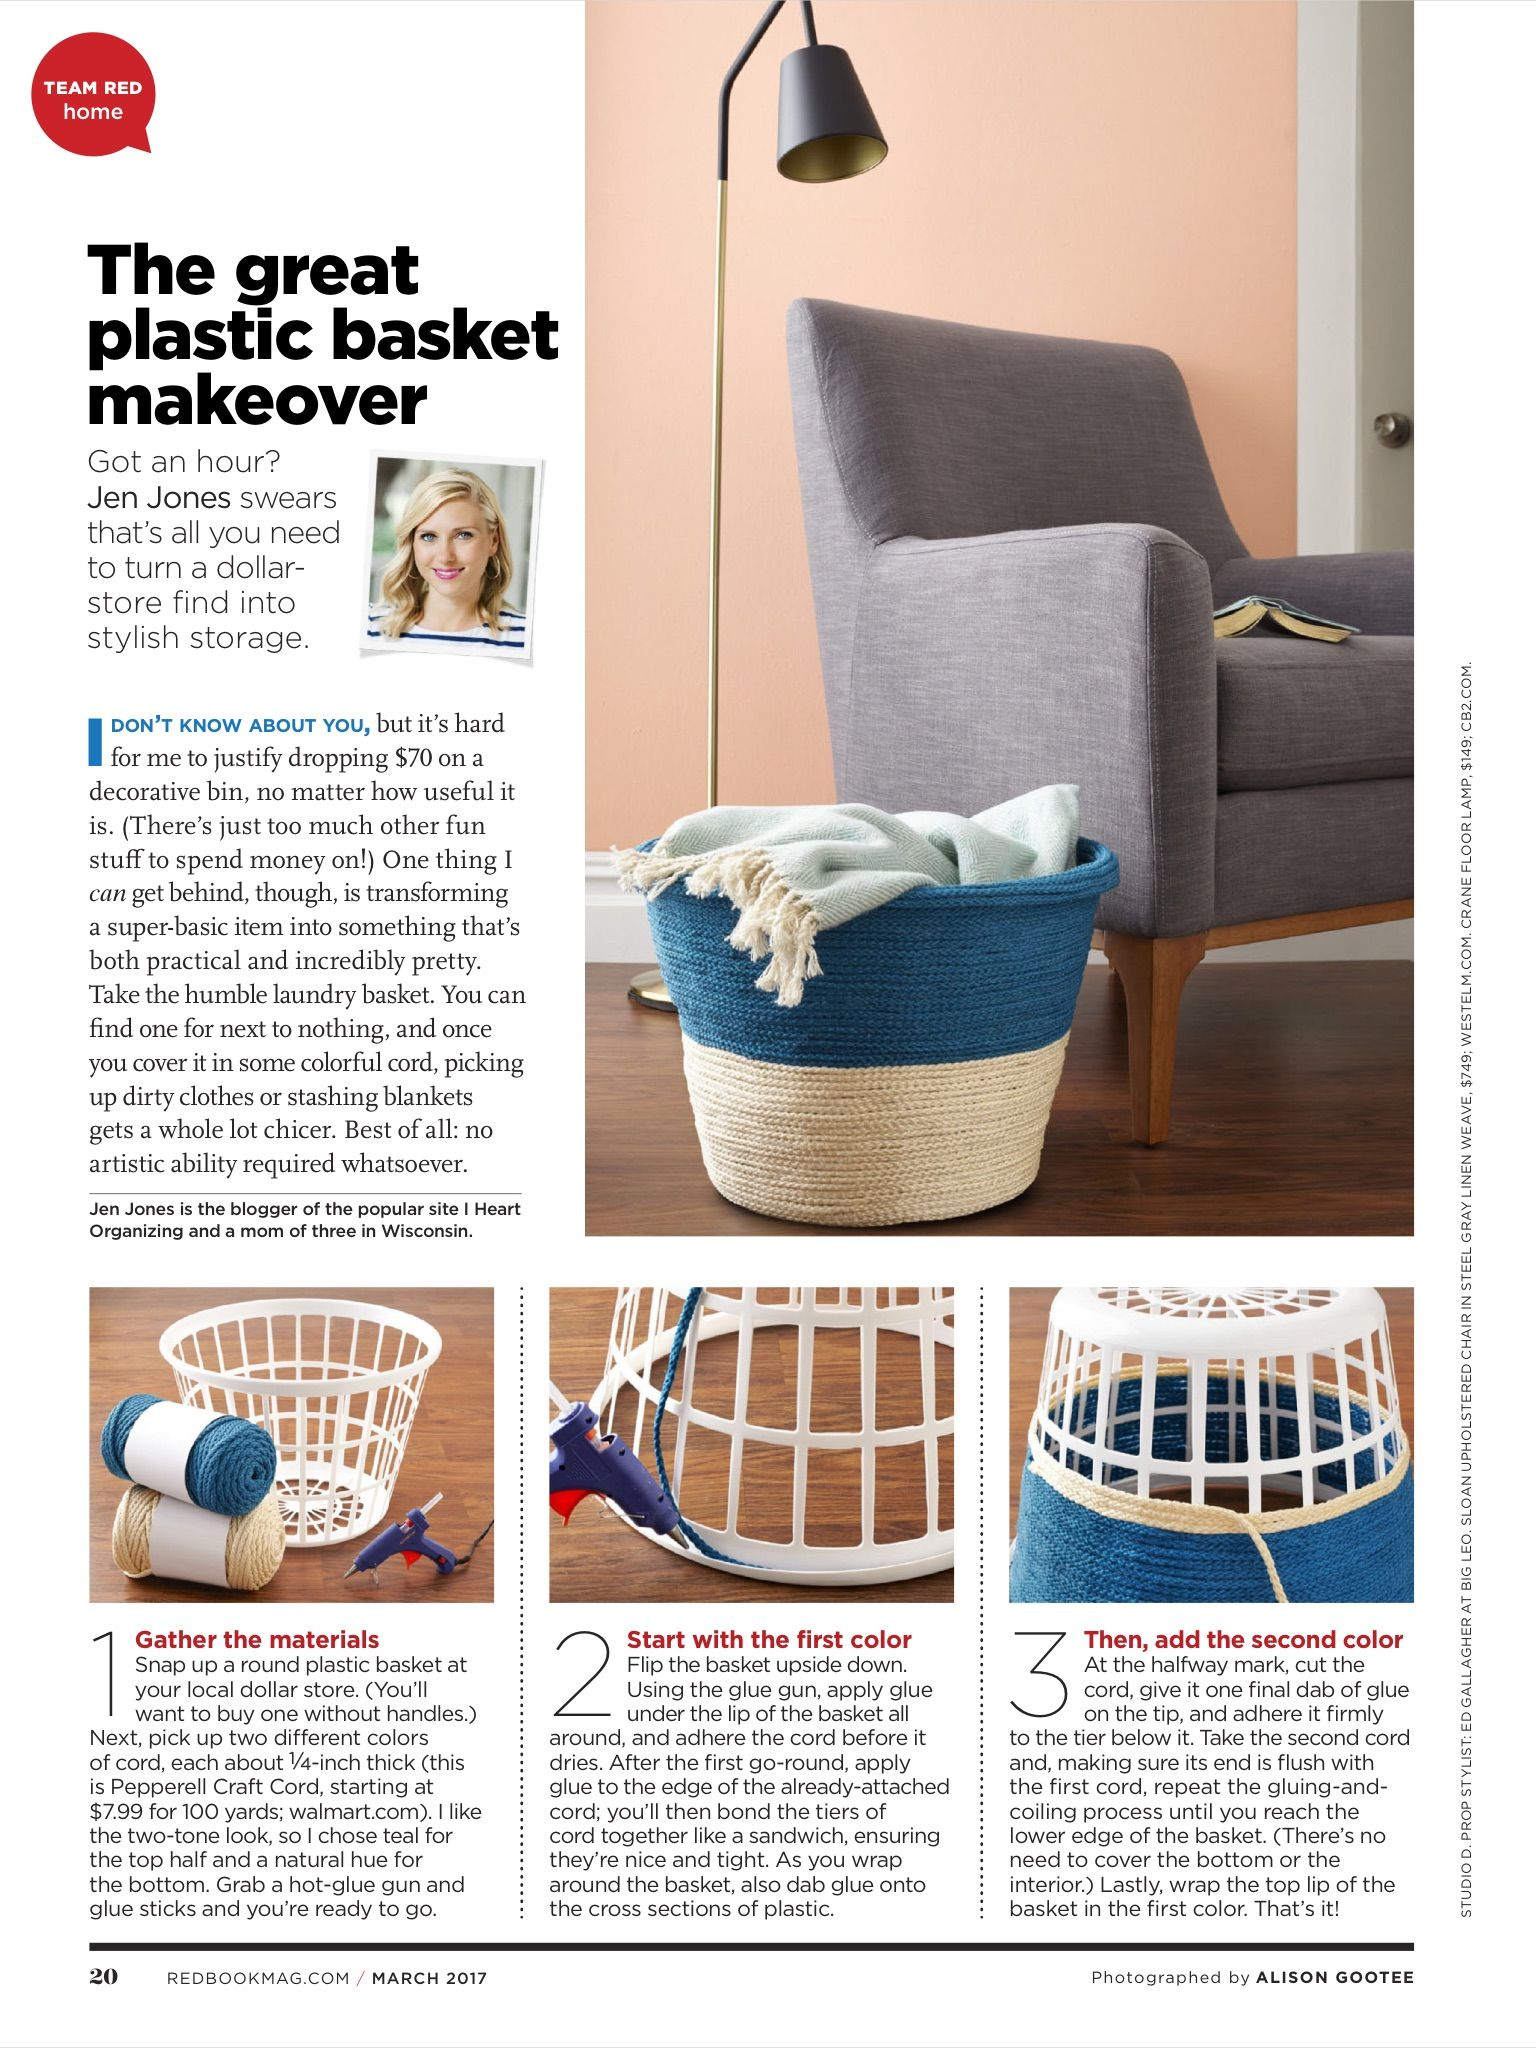 Plastic laundry basket makeover DIY in 2018